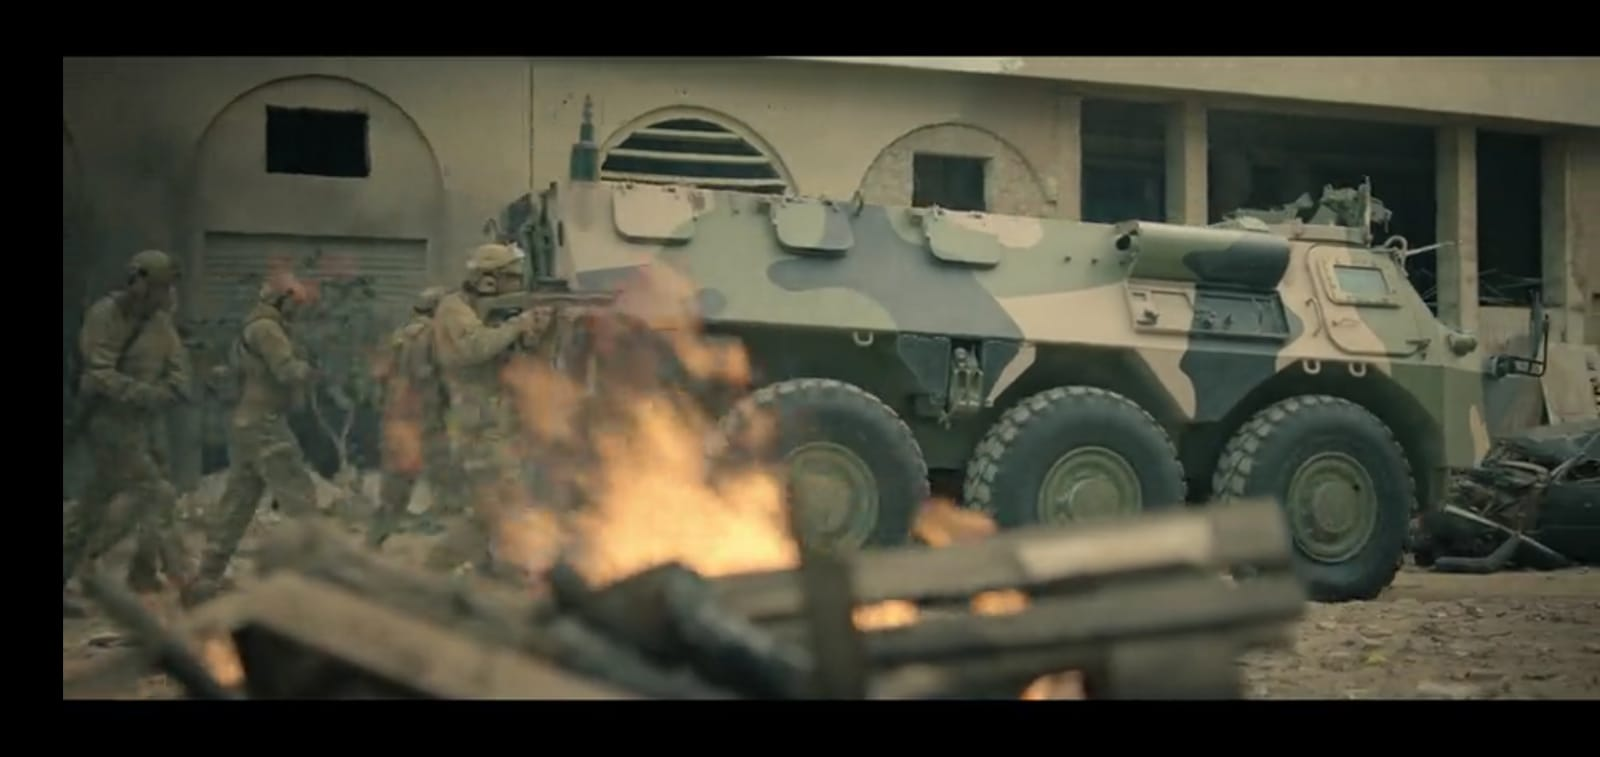 Les FAR et le Cinema / Moroccan Armed Forces in Movies - Page 11 410